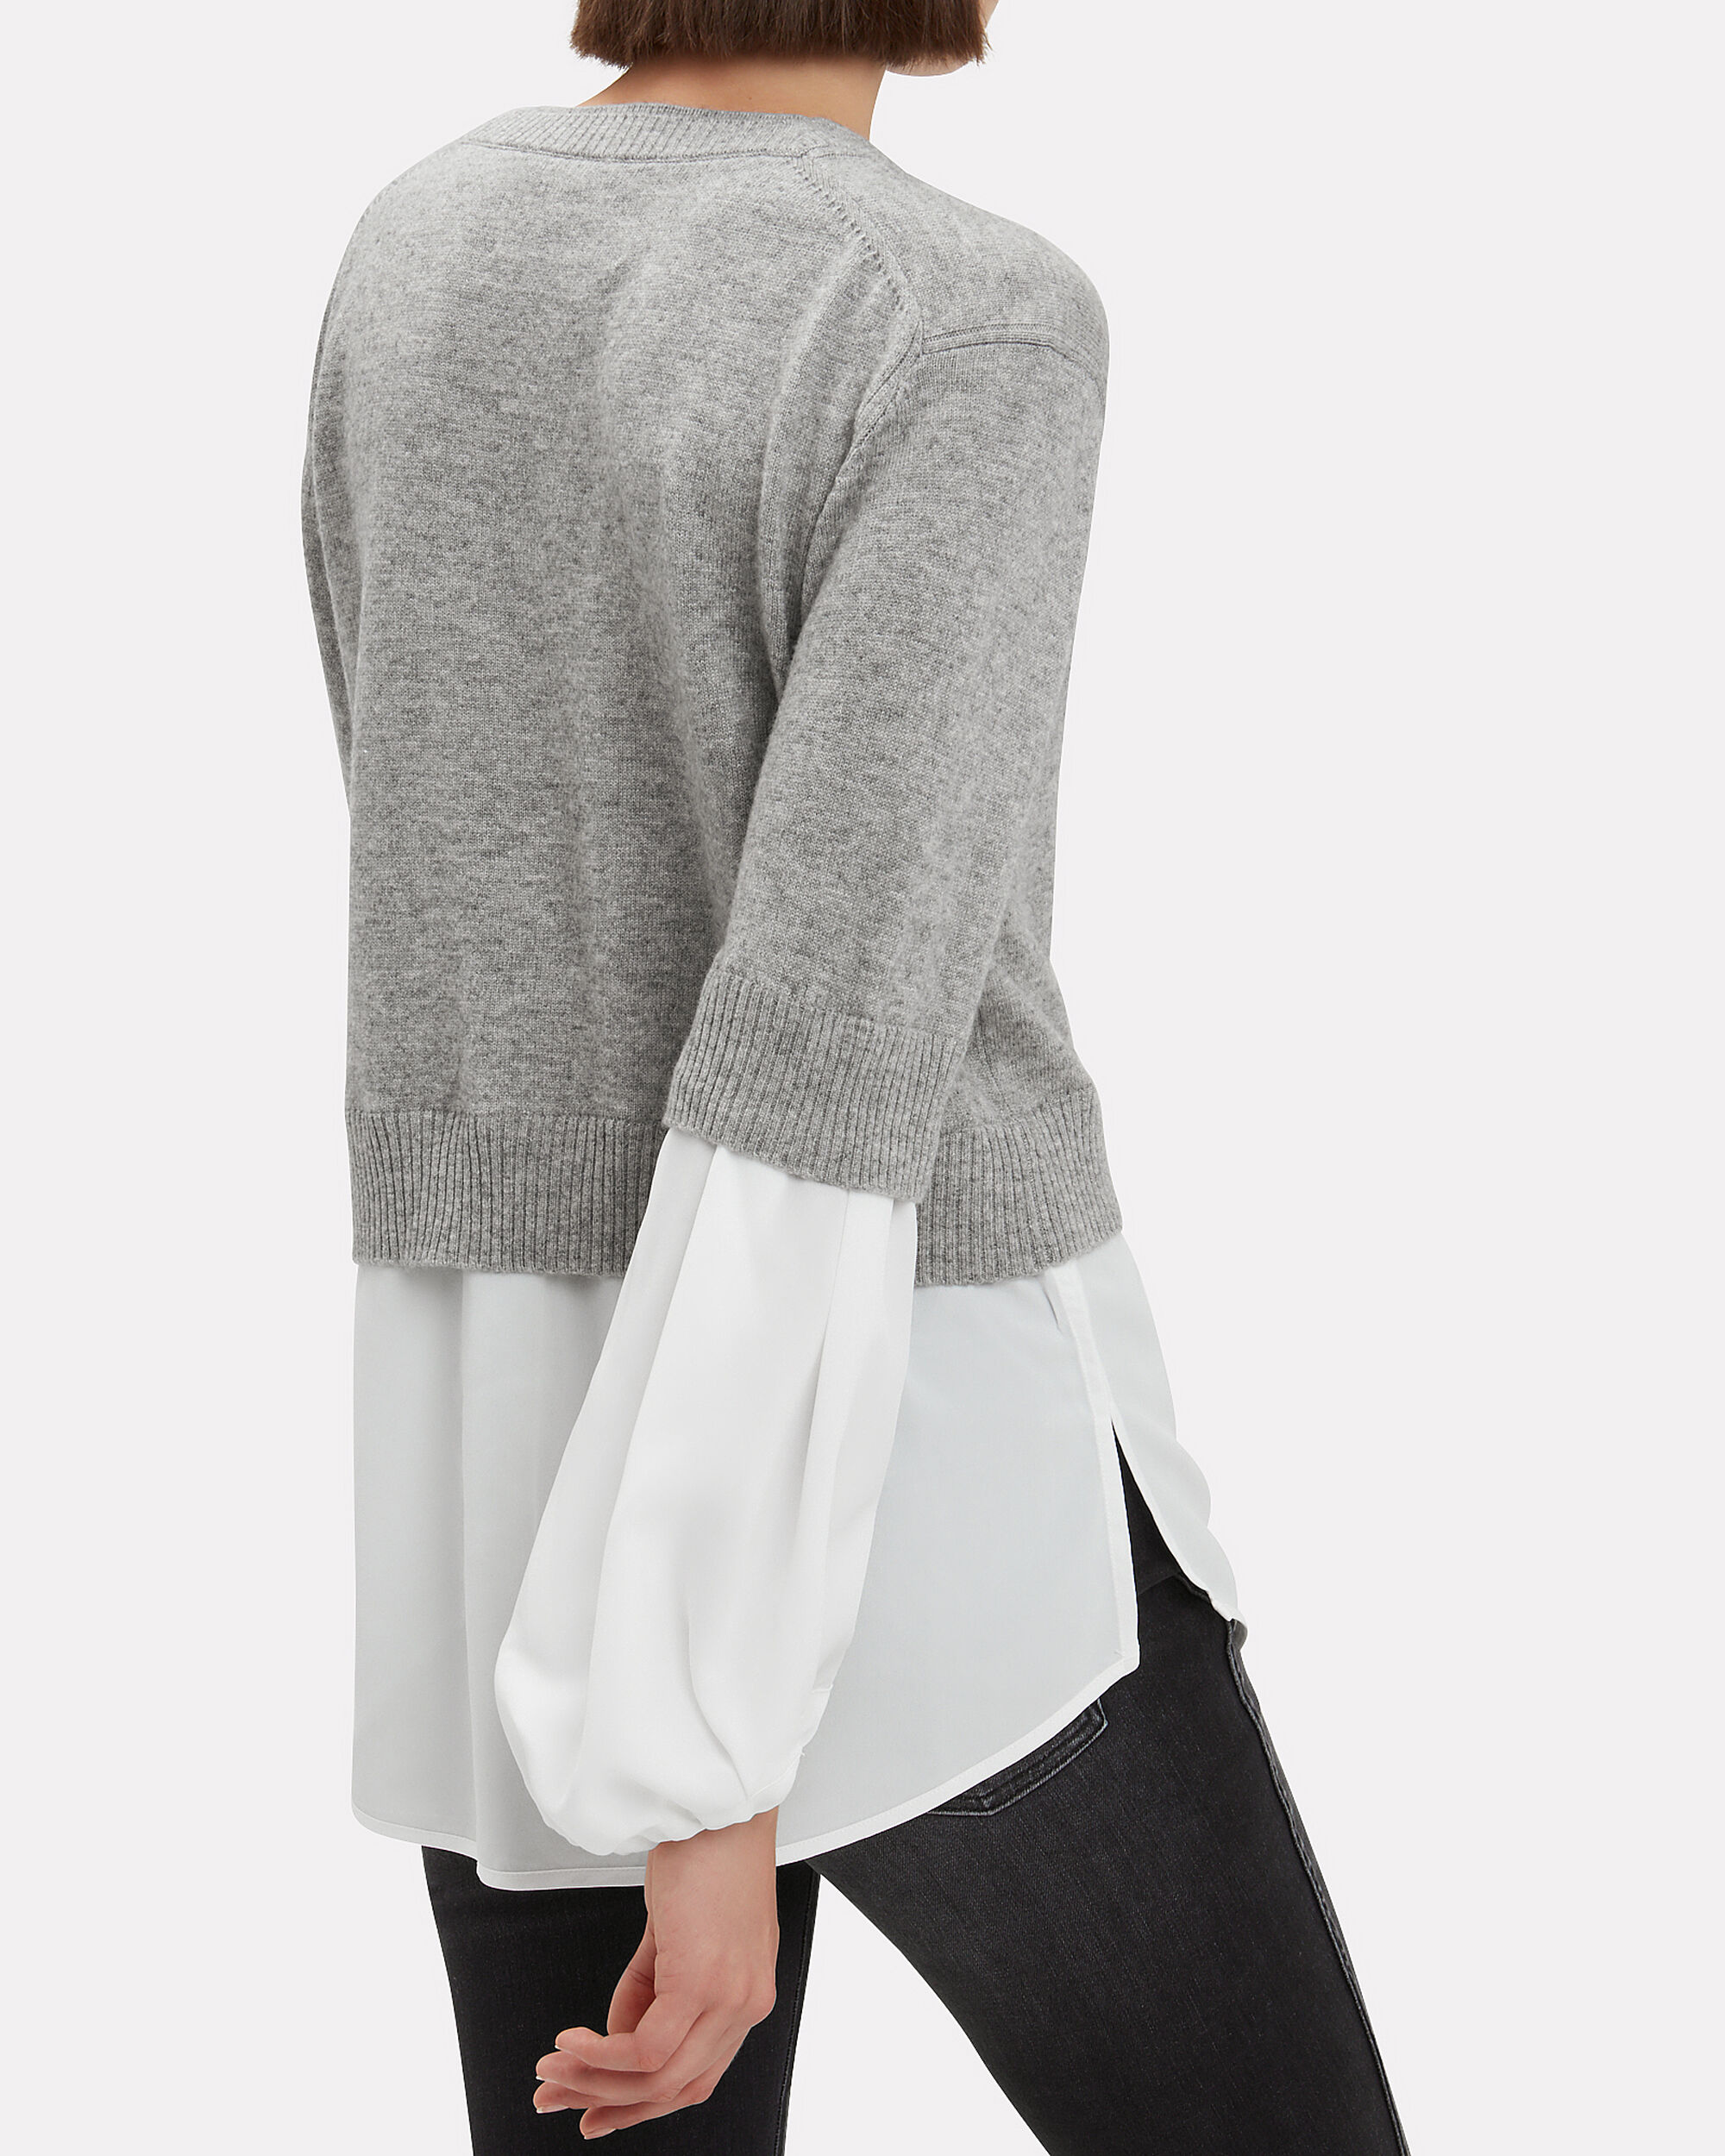 Ebele Cashmere Layered Sweater, GREY, hi-res